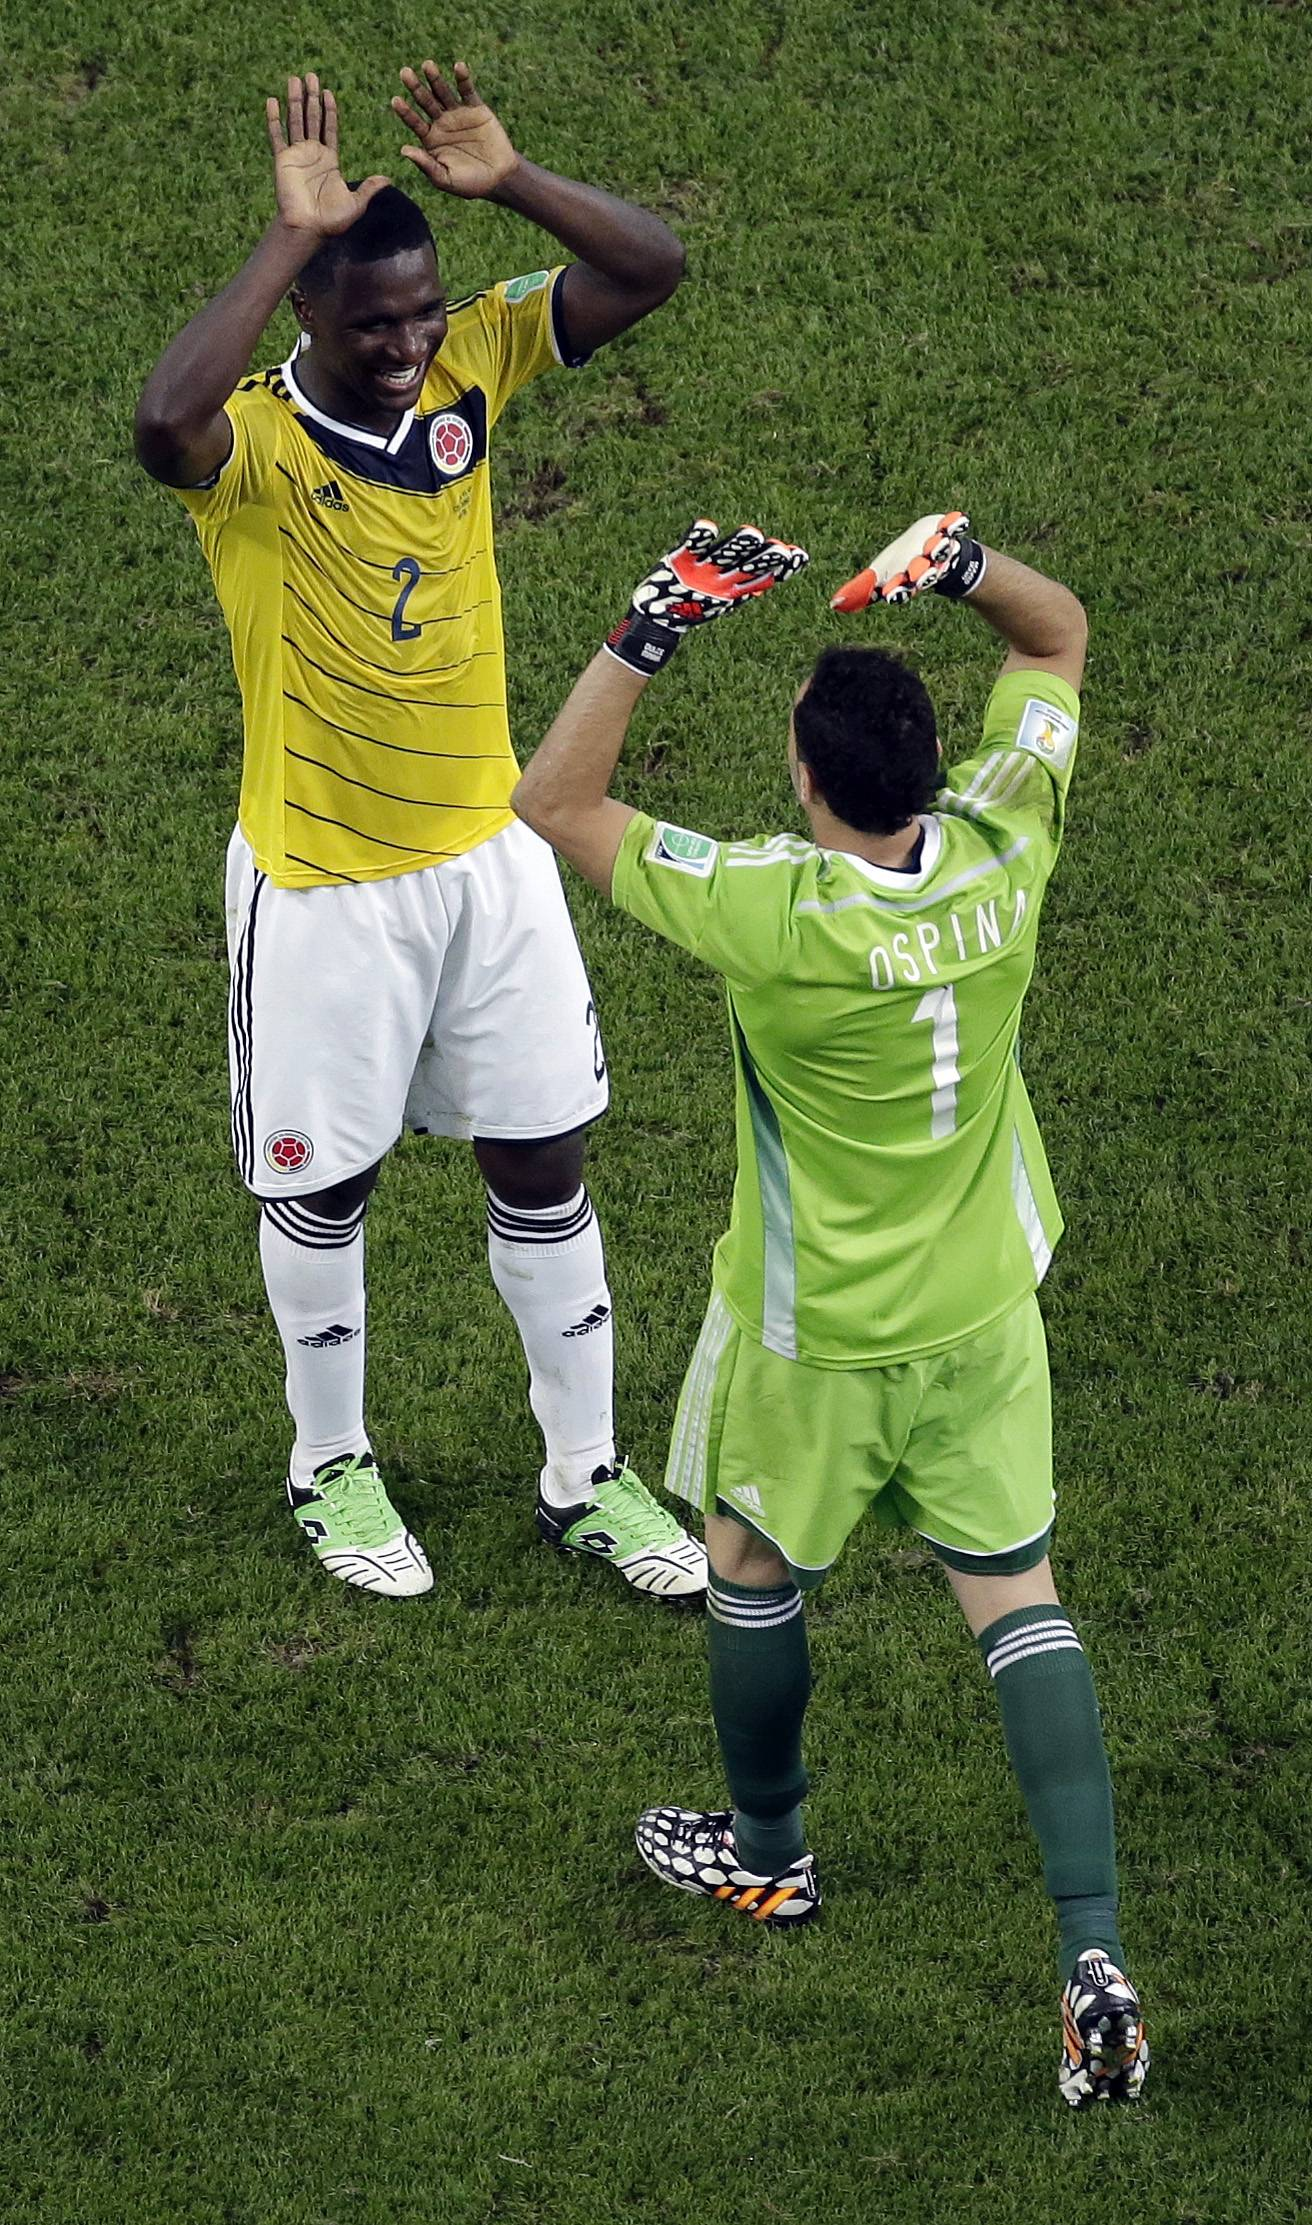 Colombia's Cristian Zapata, left, and goalkeeper David Ospina celebrate after the World Cup round of 16 soccer match between Colombia and Uruguay at the Maracana Stadium in Rio de Janeiro, Brazil, Saturday, June 28, 2014. Colombia advanced to the quarterfinals with a 2-0 win over Uruguay.